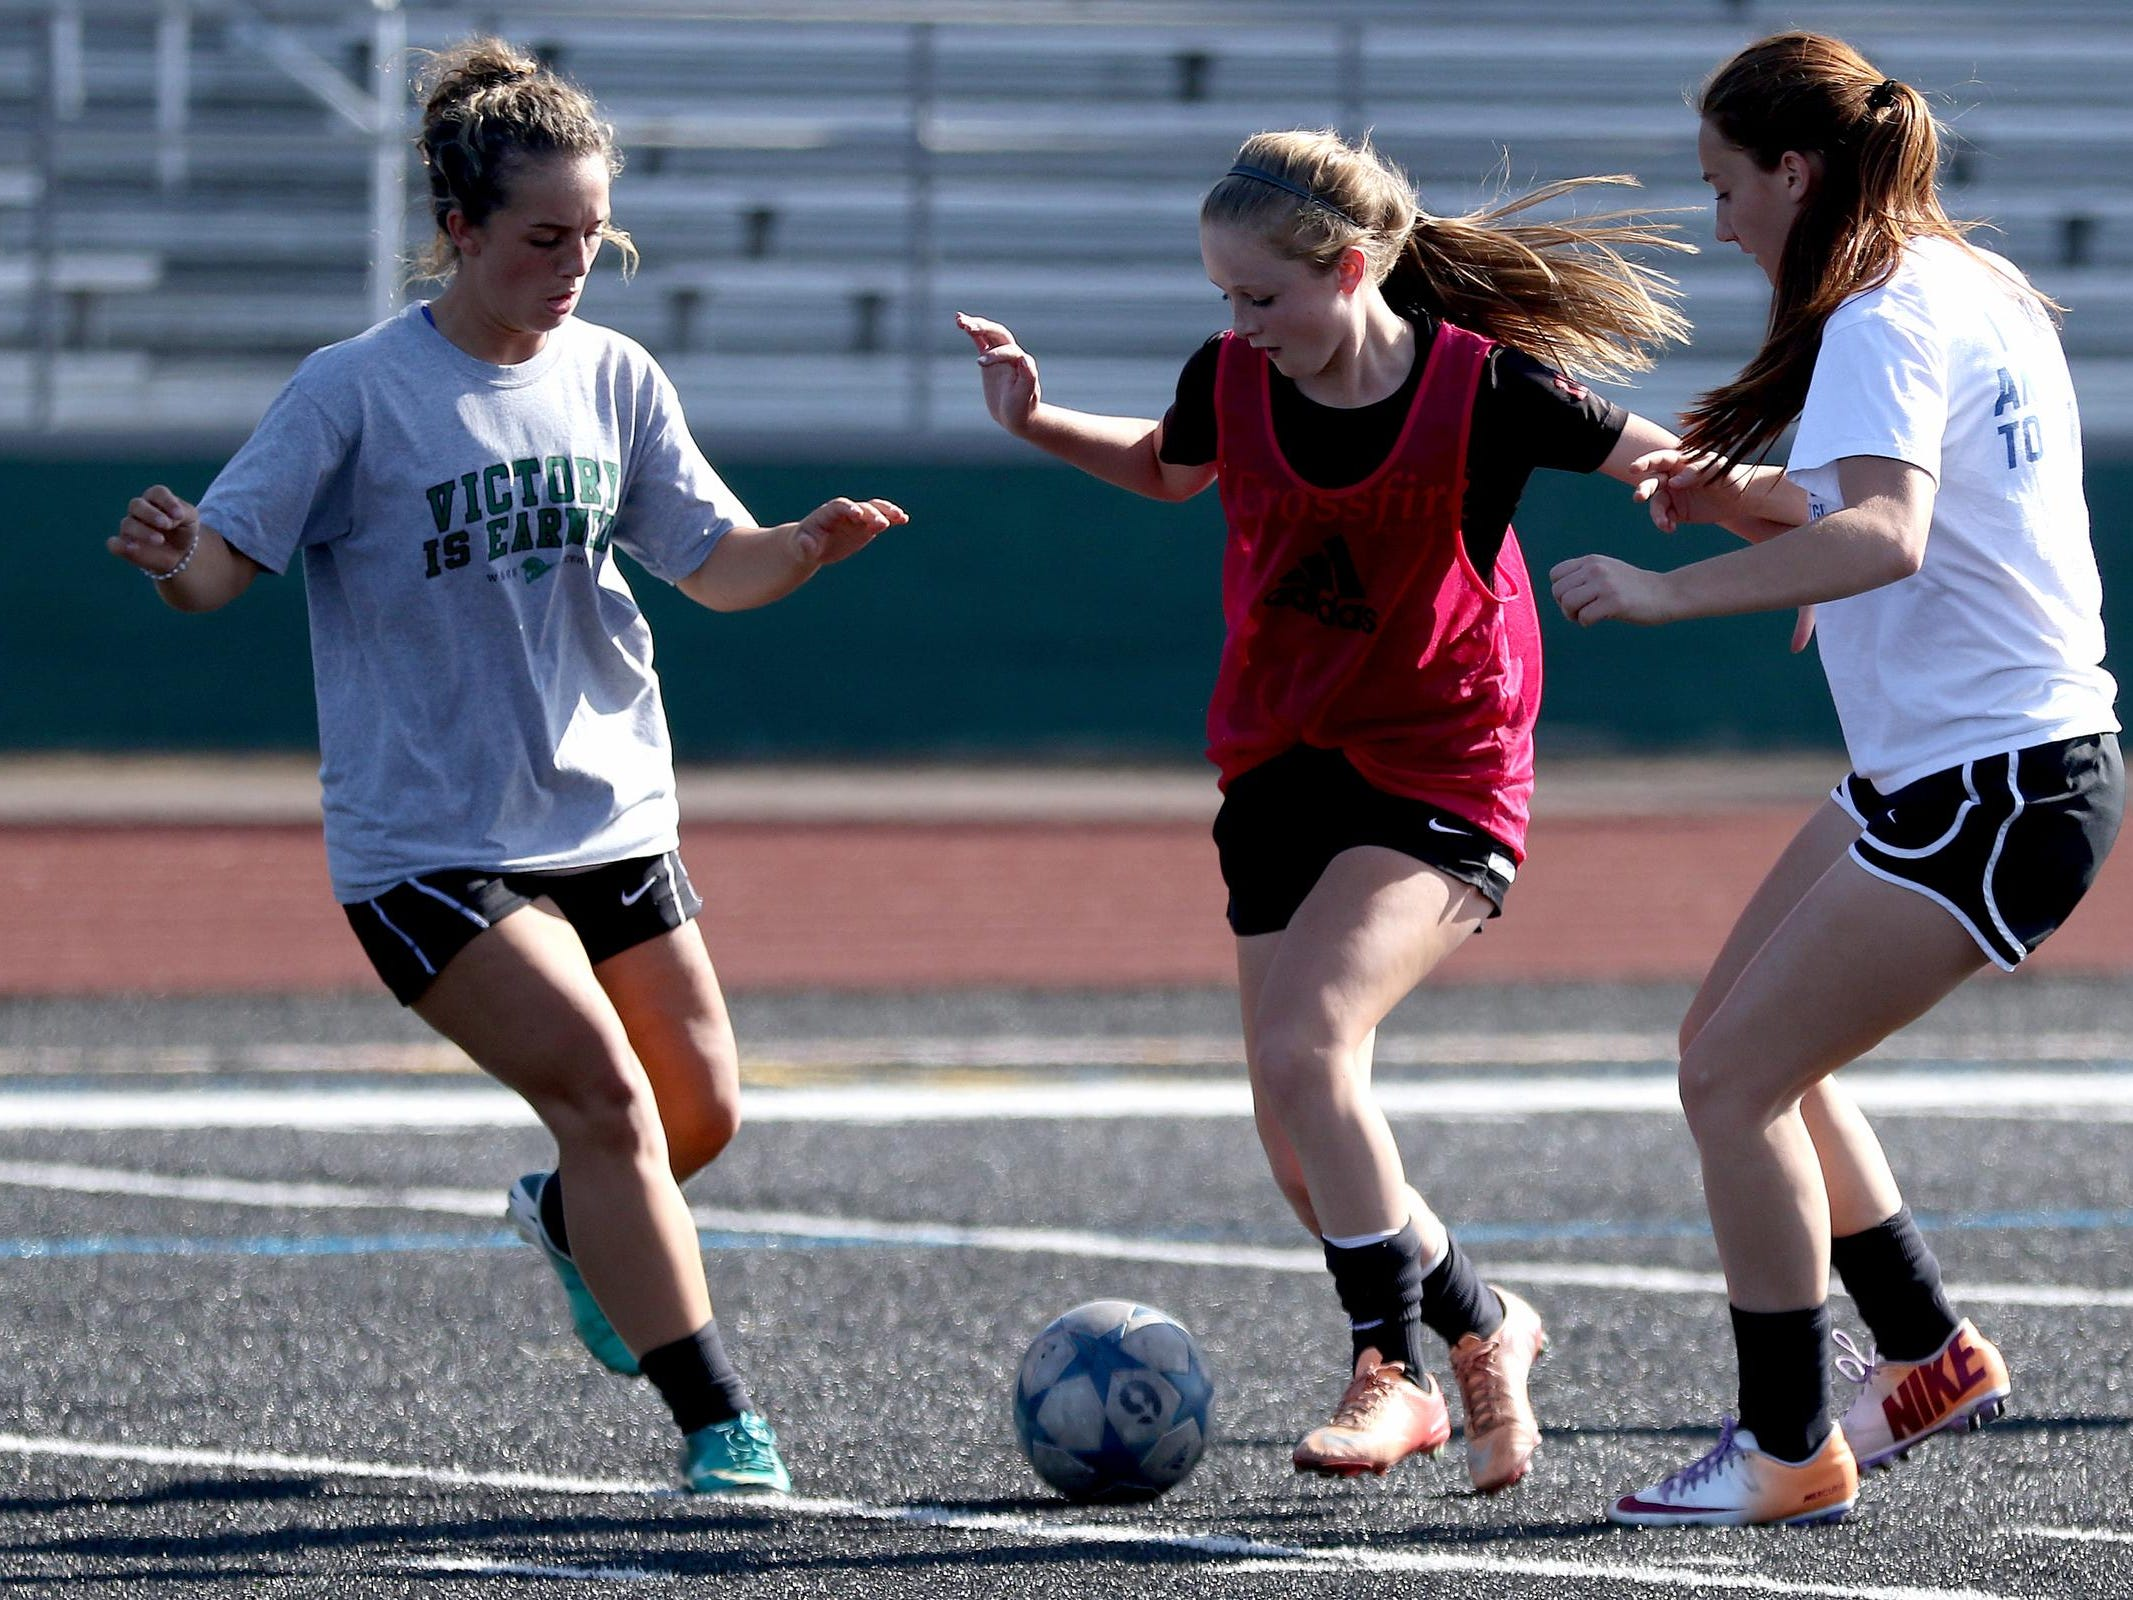 Players scrimmage during girl's soccer practice at West Salem High School on Thursday, Aug. 27, 2015.